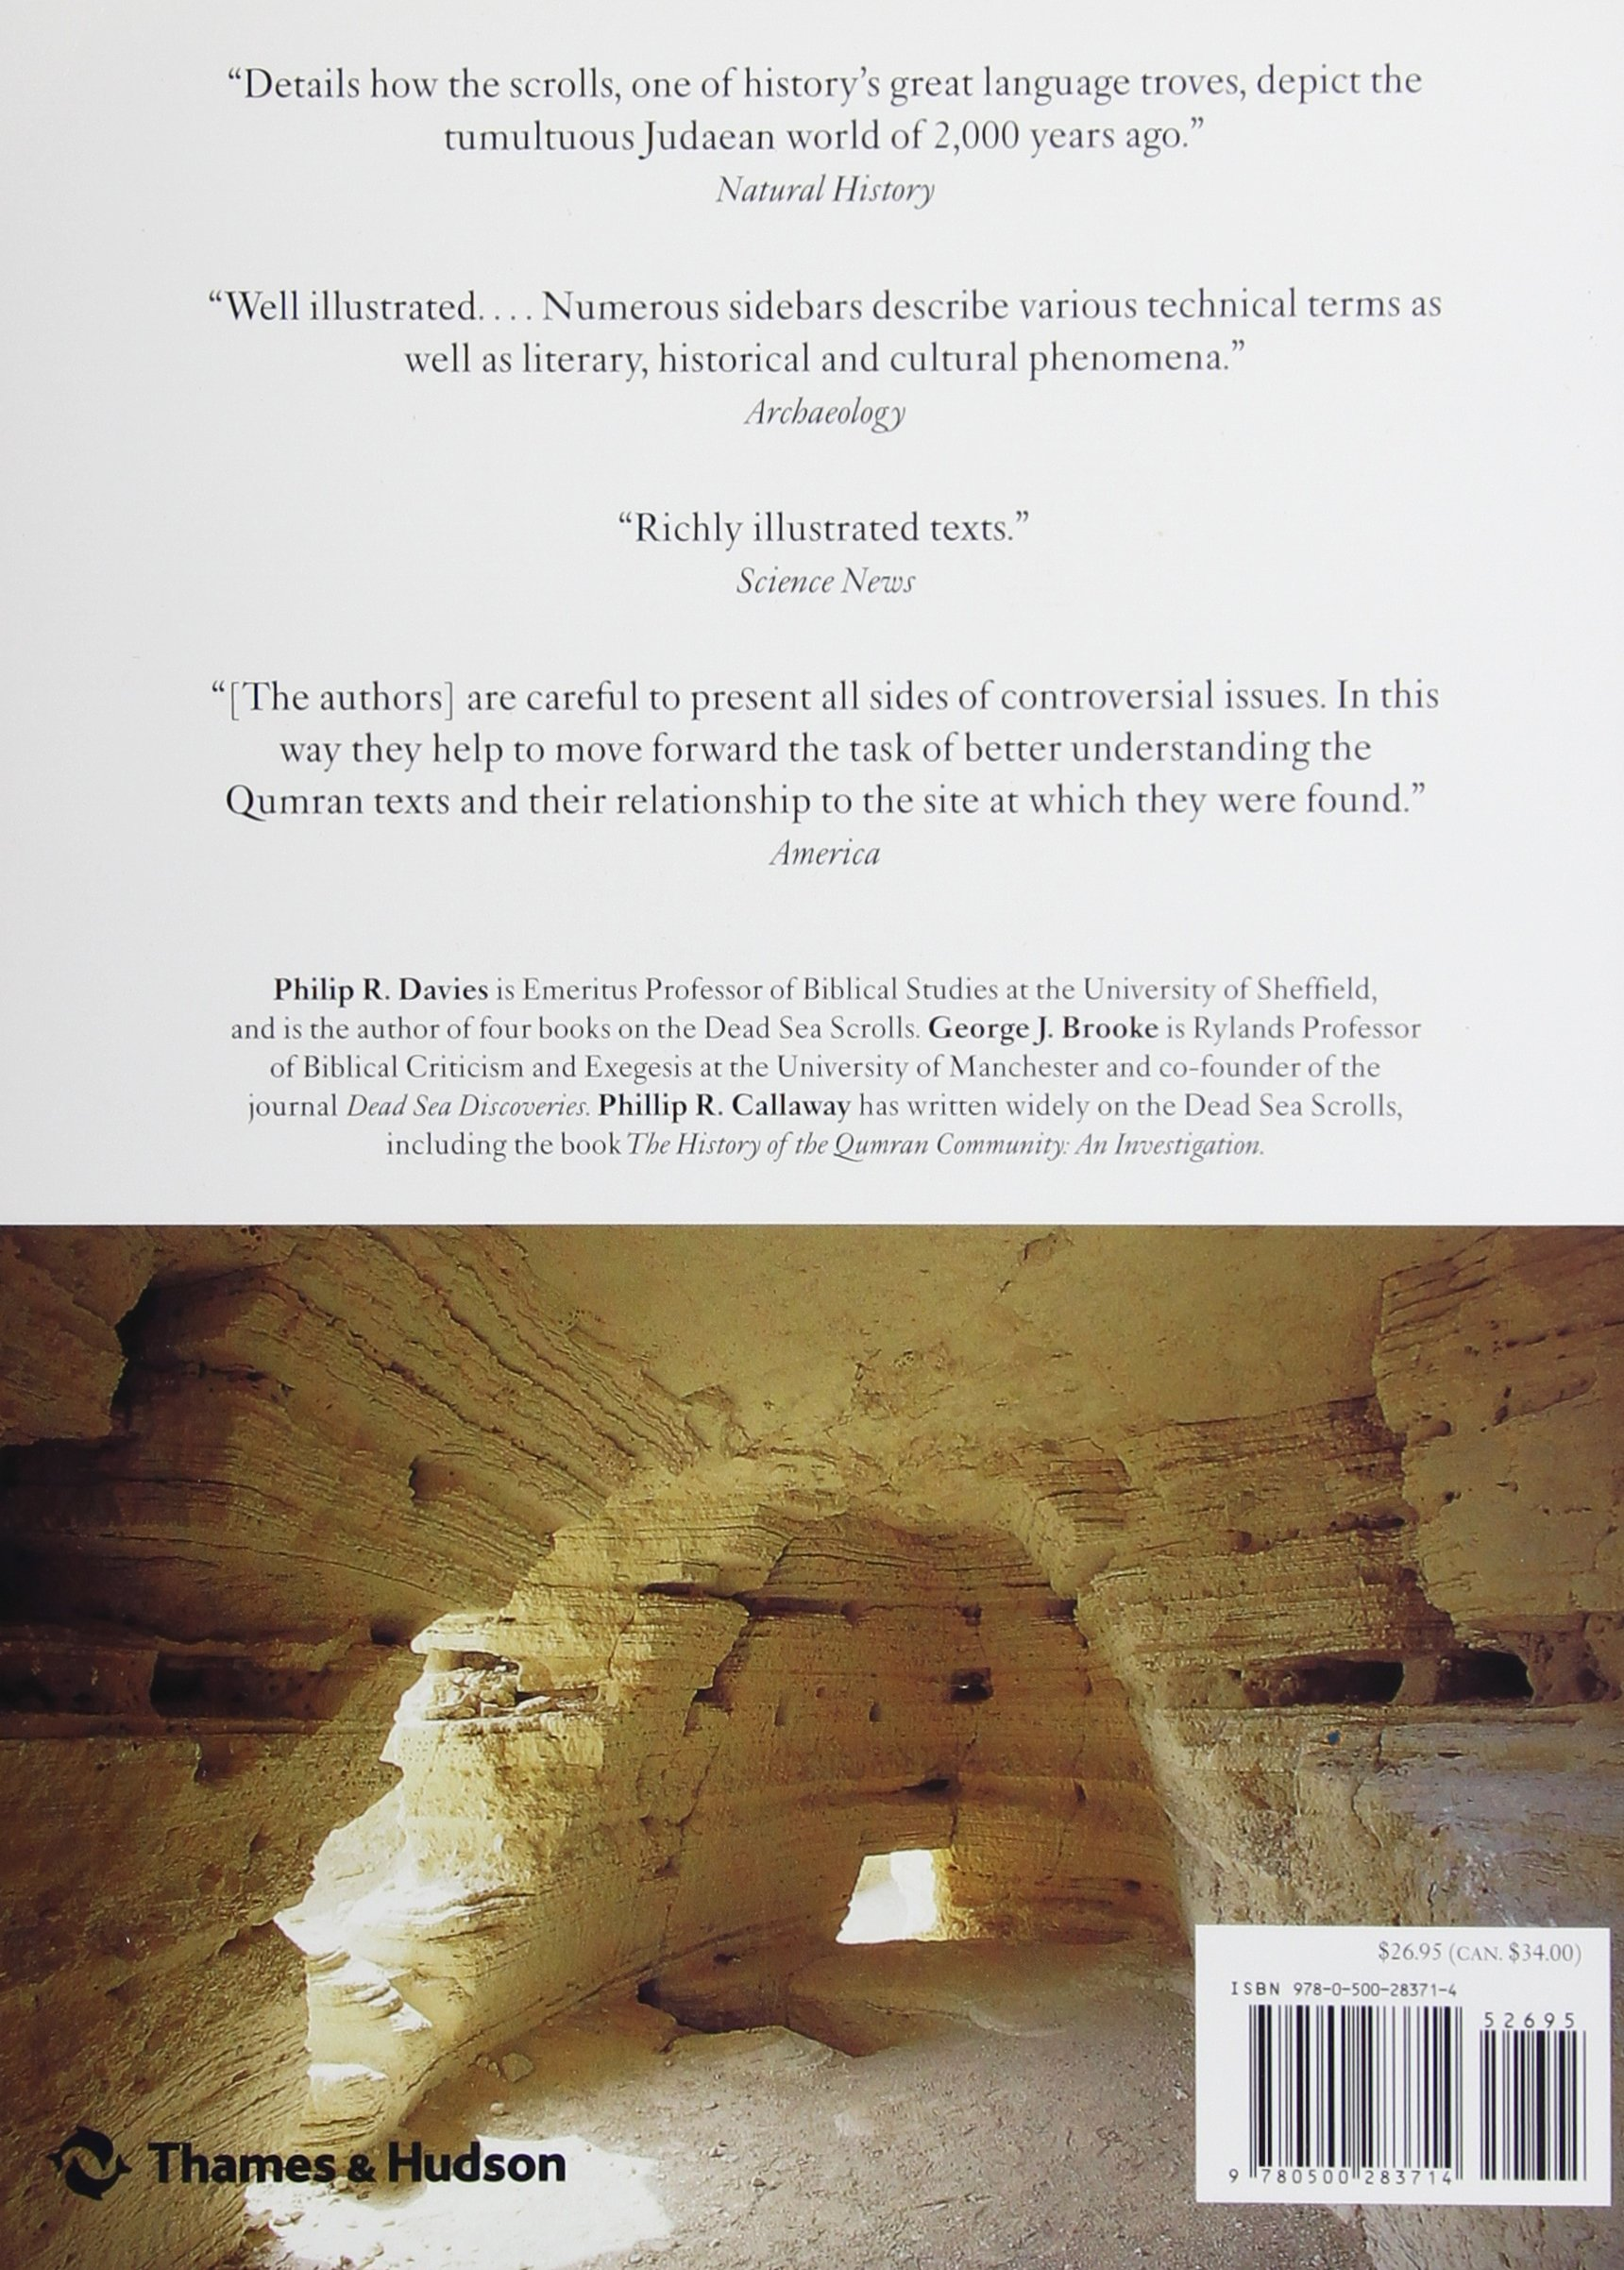 The complete world of the dead sea scrolls philip r davies george the complete world of the dead sea scrolls philip r davies george j brooke phillip r callaway 9780500283714 amazon books fandeluxe Image collections